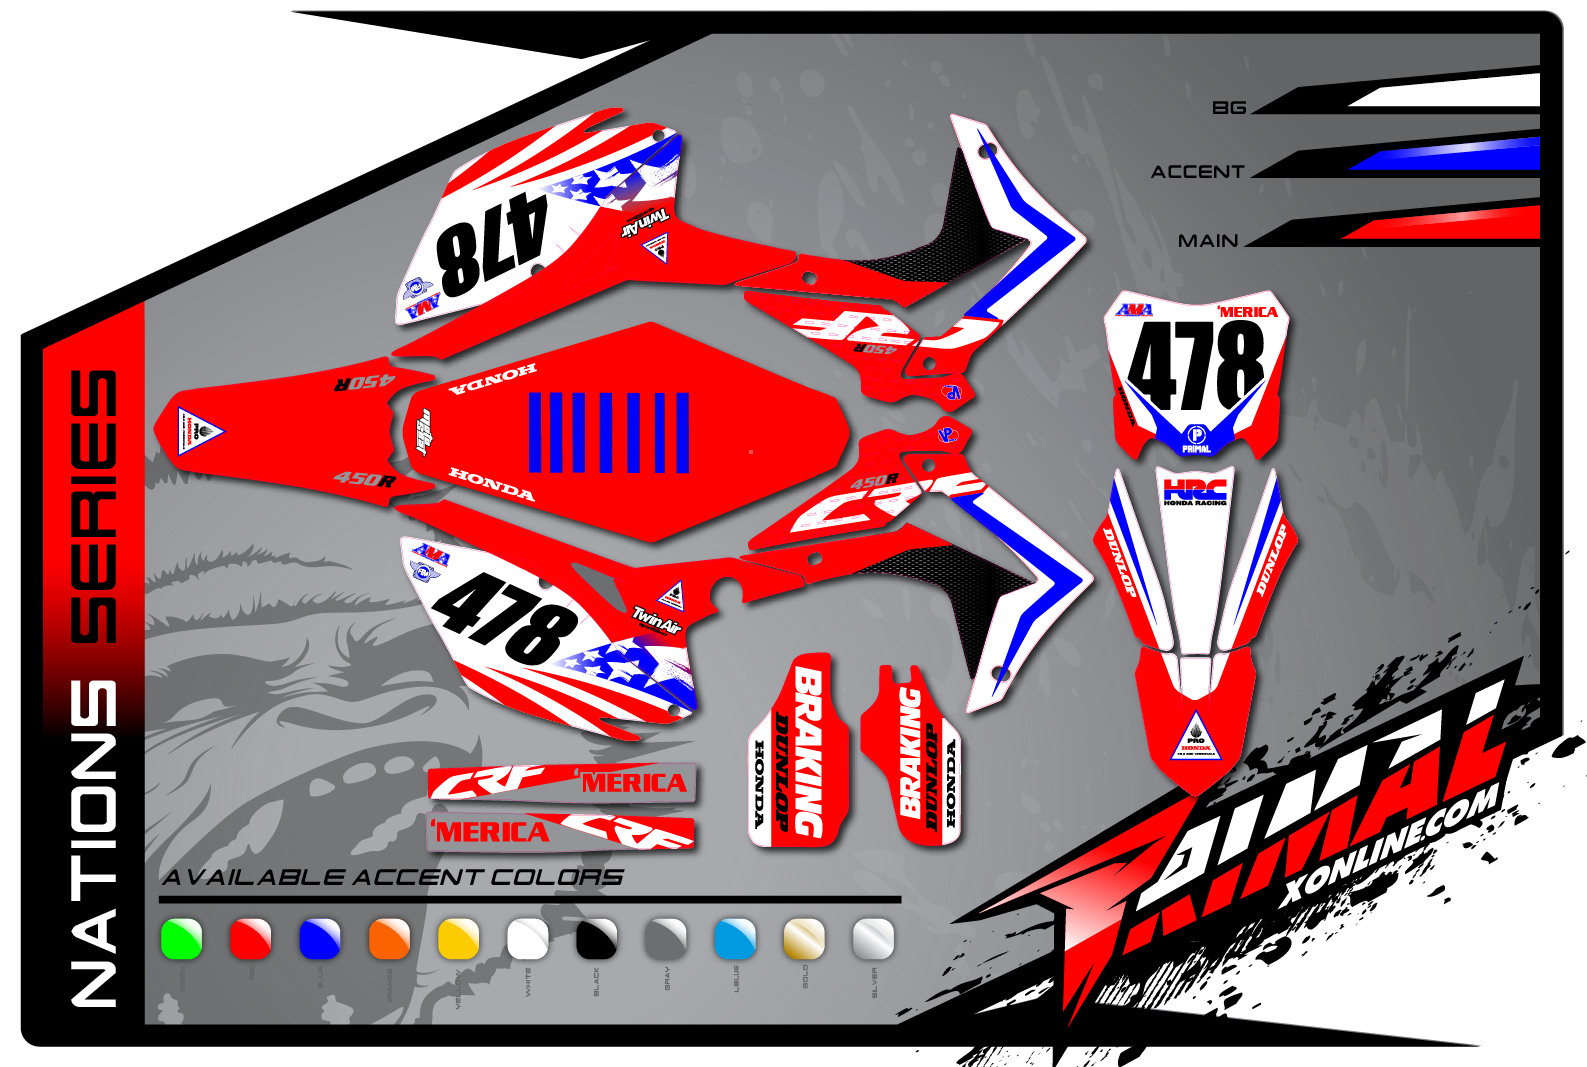 primal-x-motorsports-mx-graphics-crf450-usa-nation-motocross-graphics-motocross-decals-motocross-de-nations